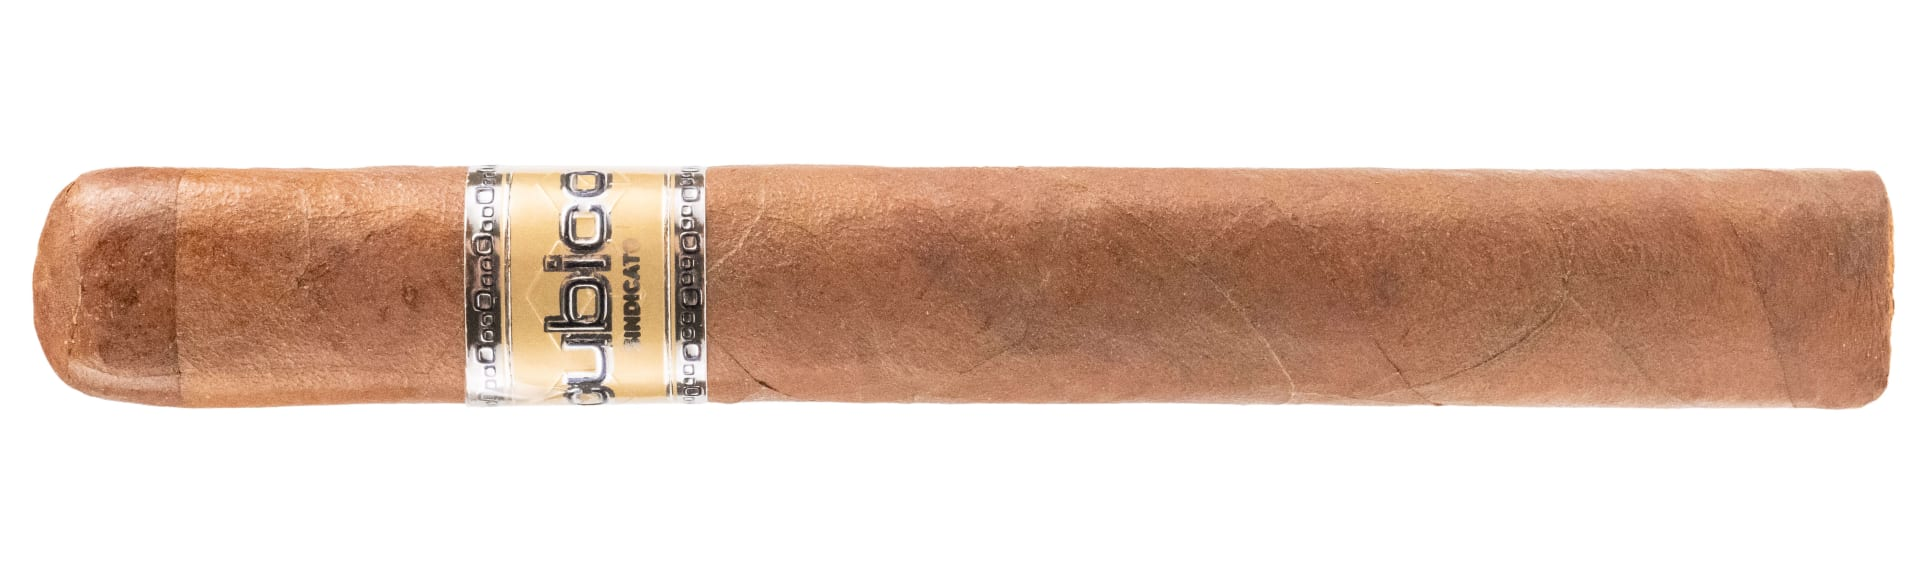 Blind Cigar Review: Sindicato | Cubico Toro Featured Image